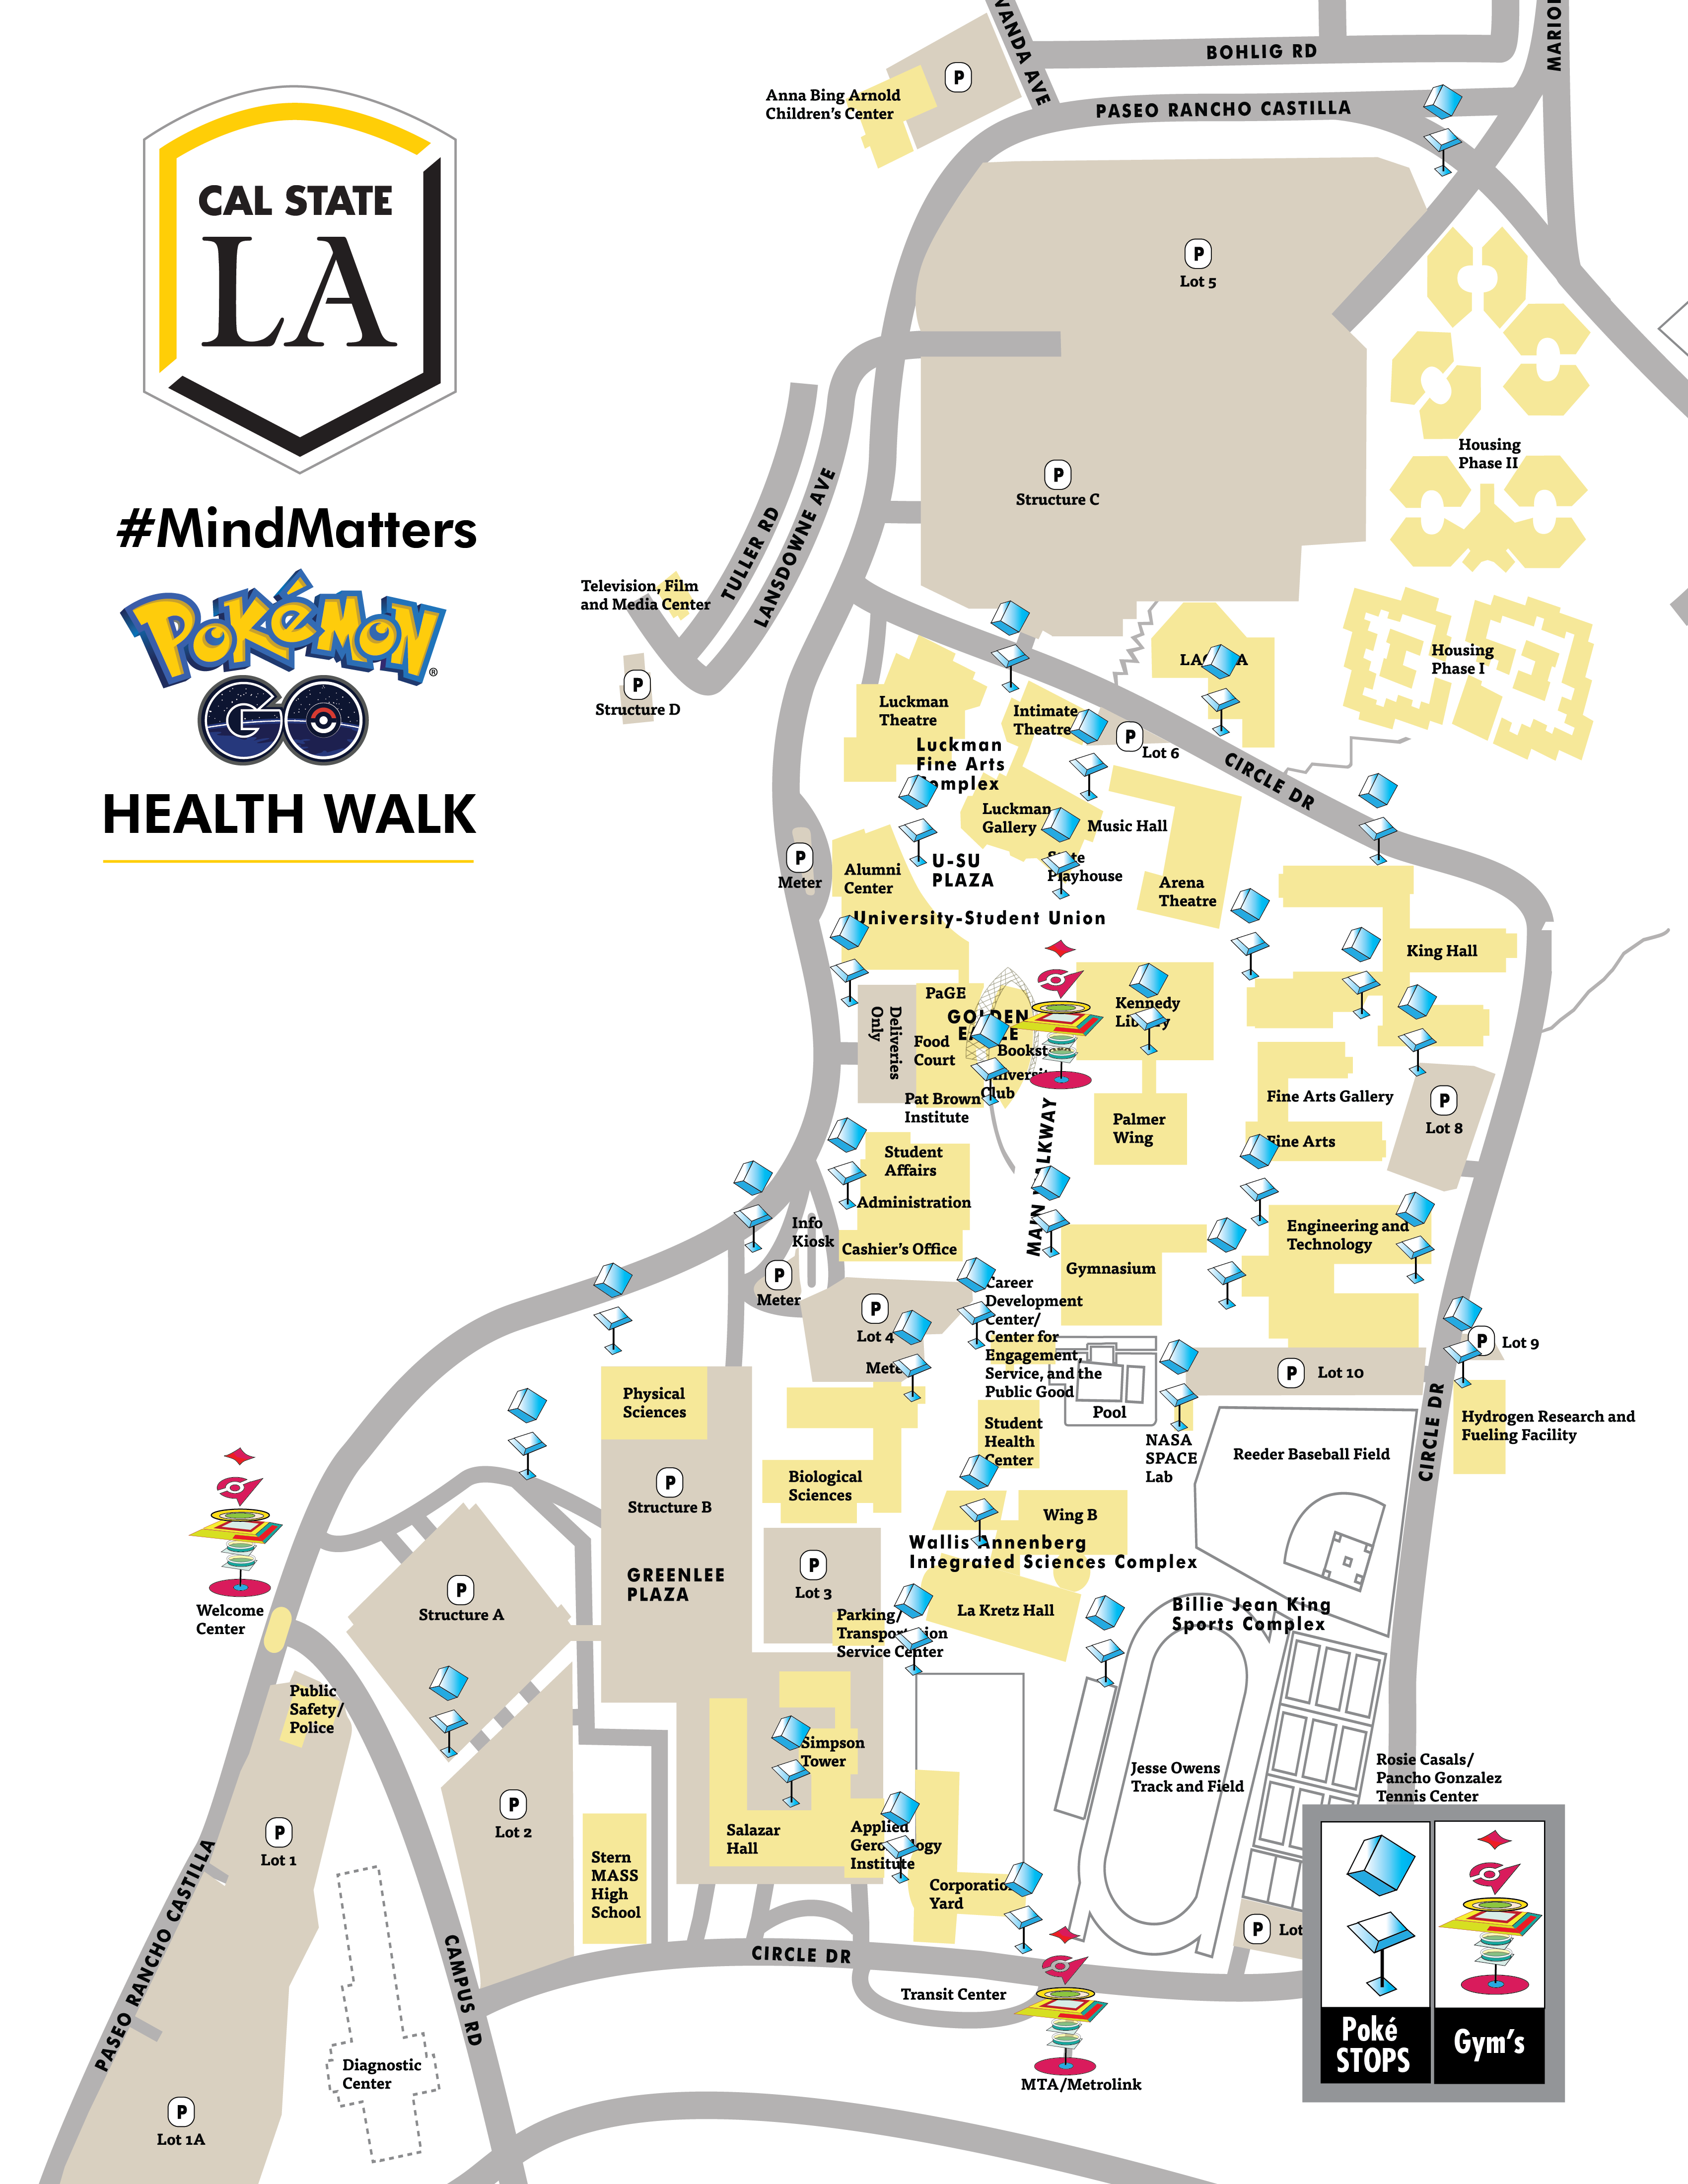 Pokémon GO Health Walk | Cal State LA on long beach csulb campus map, texas a&m-kingsville campus map, western state campus map, new haven campus map, tea towels california map, cal state fullerton housing map, northwestern state university campus map, california institute of technology campus map, lenoir-rhyne campus map, cal state los angeles map, cal state channel islands campus map, cal state east bay campus map, cal state dominguez hills location, cal state stanislaus campus map, va long beach campus map, california state university campus map, grambling state university on map, long beach university campus map, cal state san diego campus, csula map,